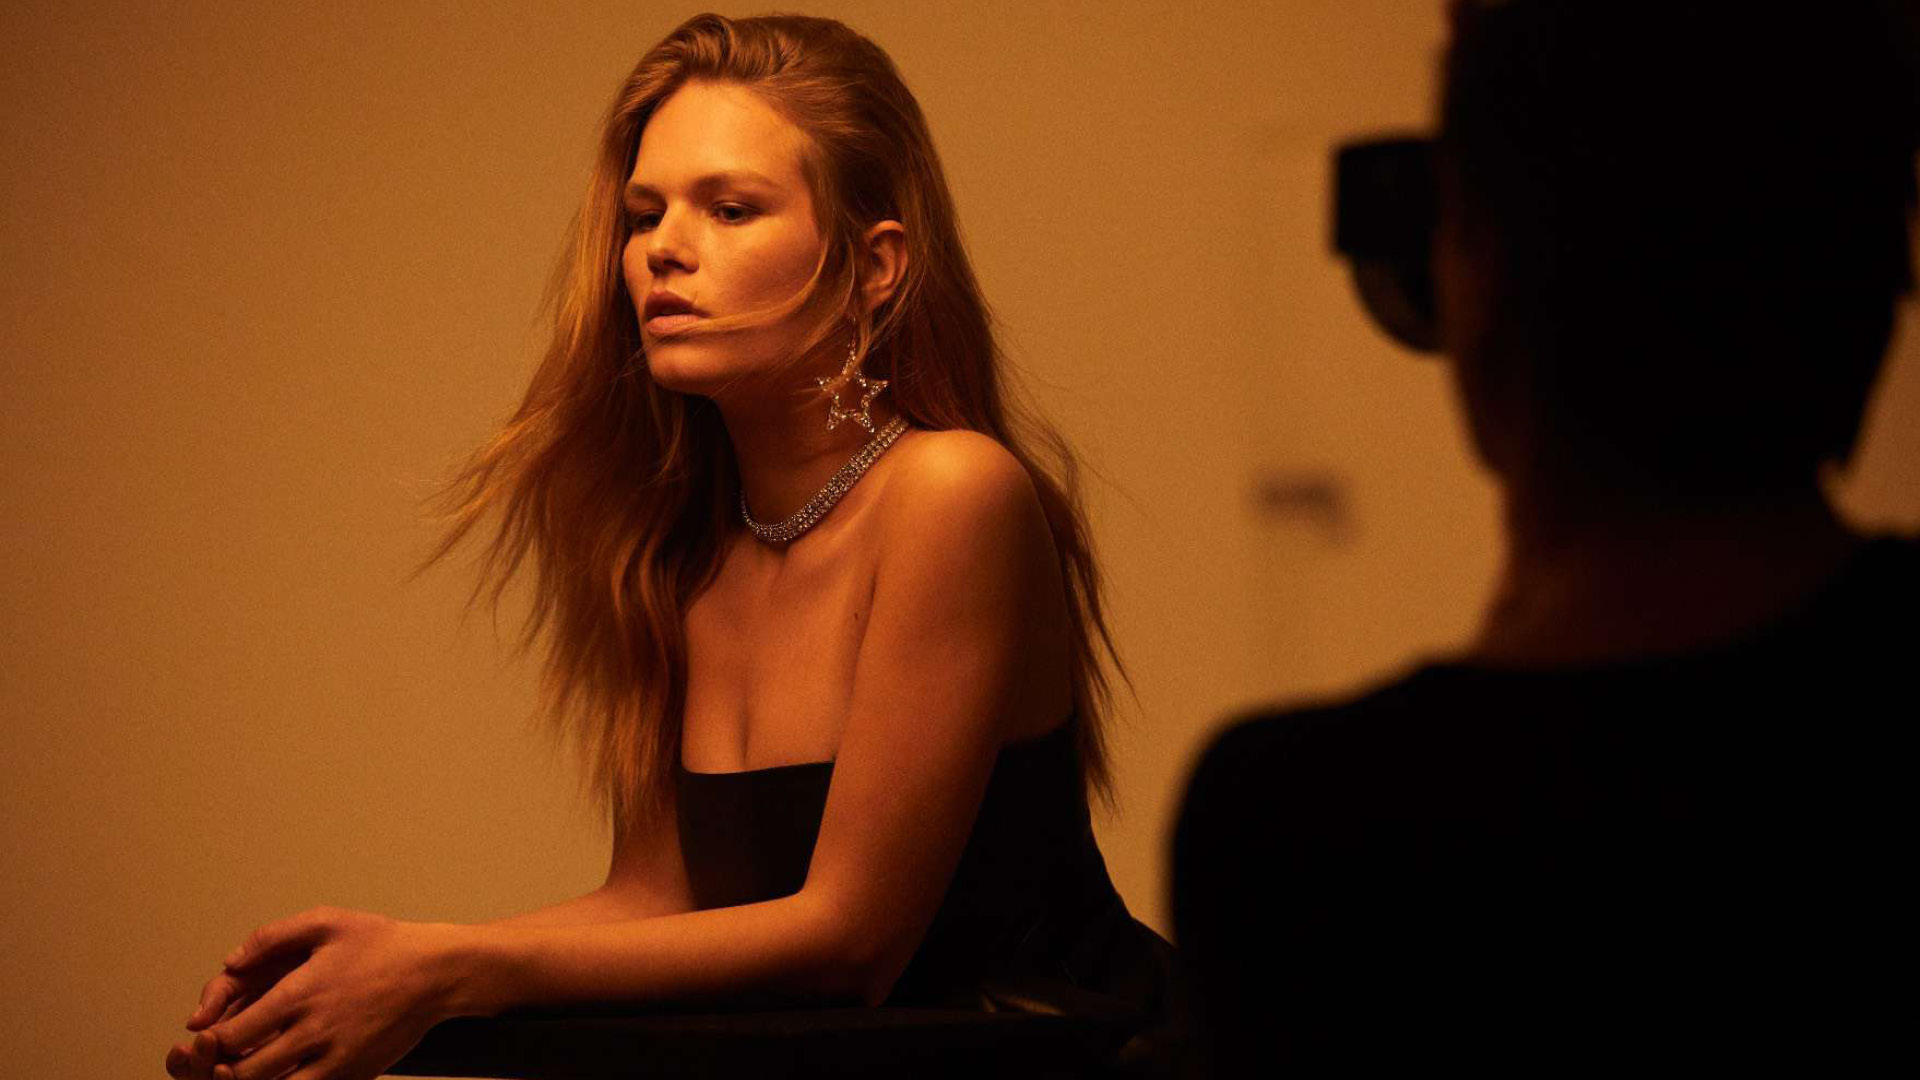 Exclusive: Anna Ewers Fronts Liu Jo's Meghan Markle-Inspired A/W19 Campaign